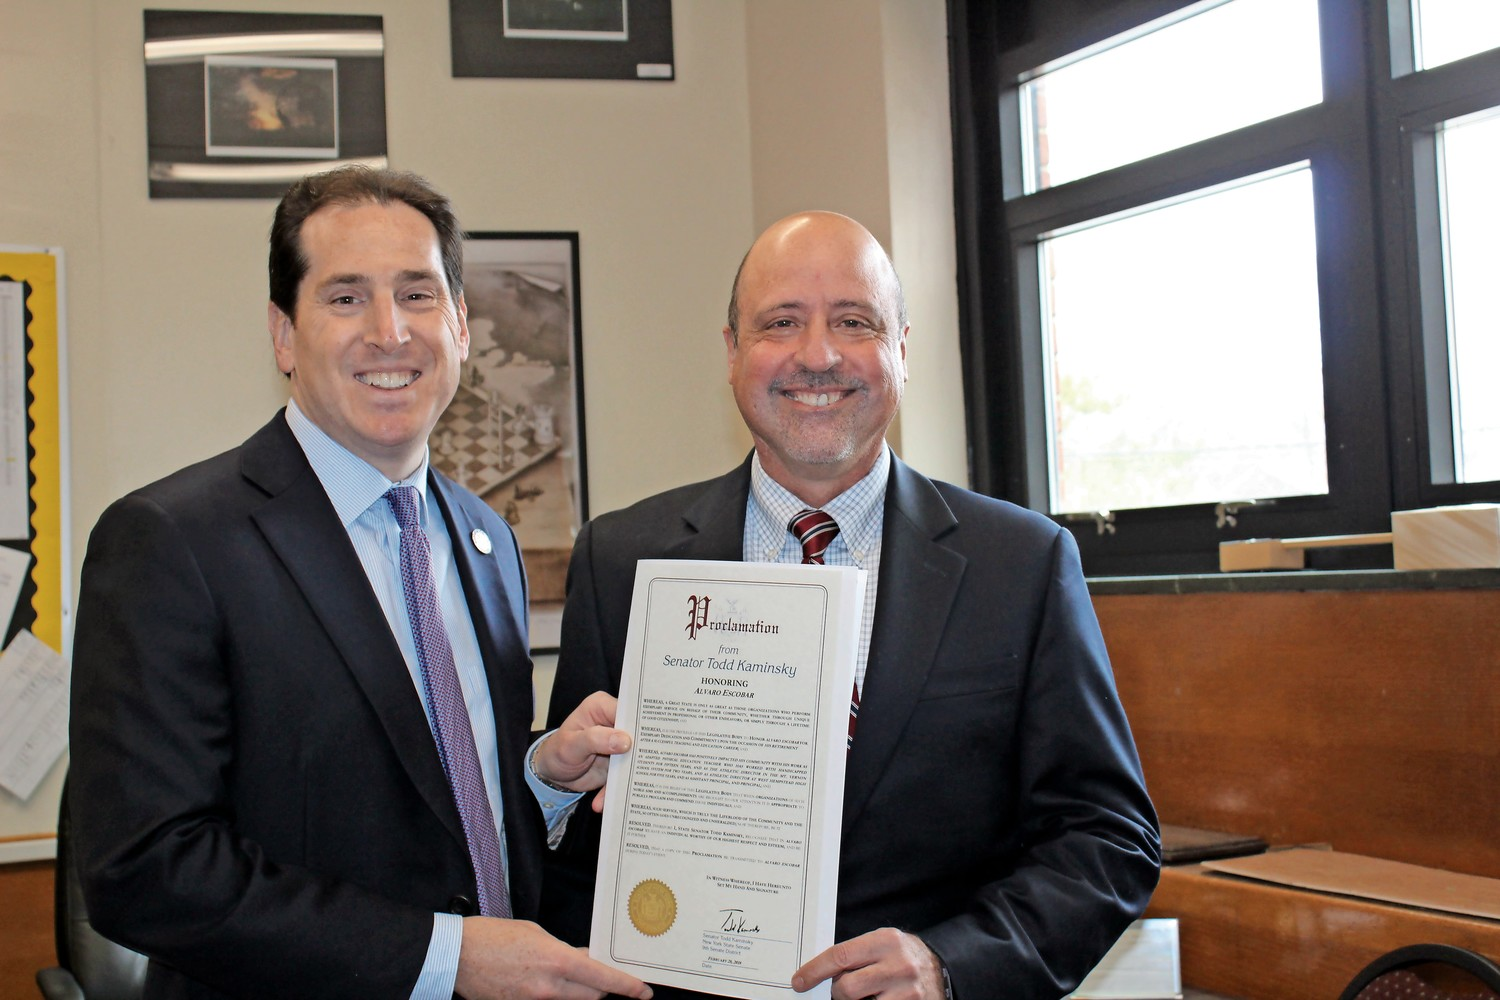 State Sen. Todd Kaminsky presented a proclamation to West Hempstead High School Principal Alvaro Escobar for his 18 years in the West Hempstead School District on Feb. 26.